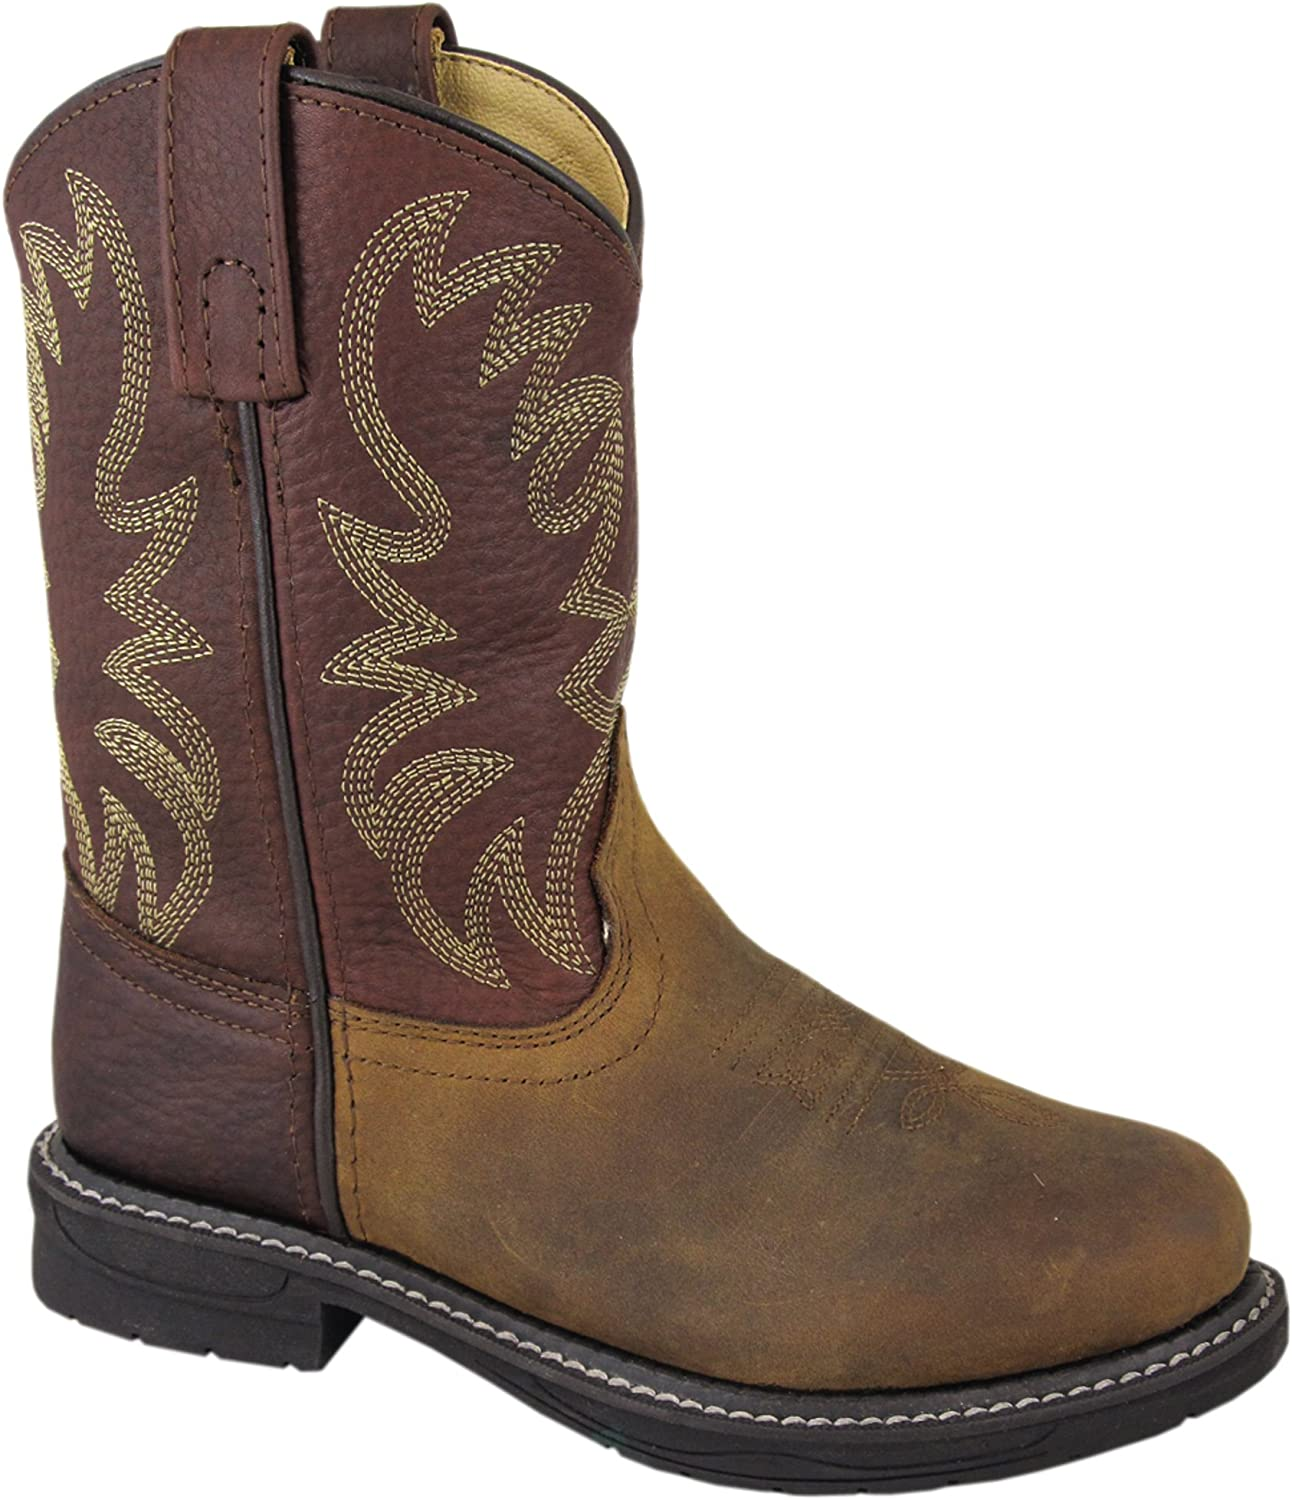 Smoky Mountain Men/'s Brown Pointed Round Western Toe Leather Cowboy Boots SALE